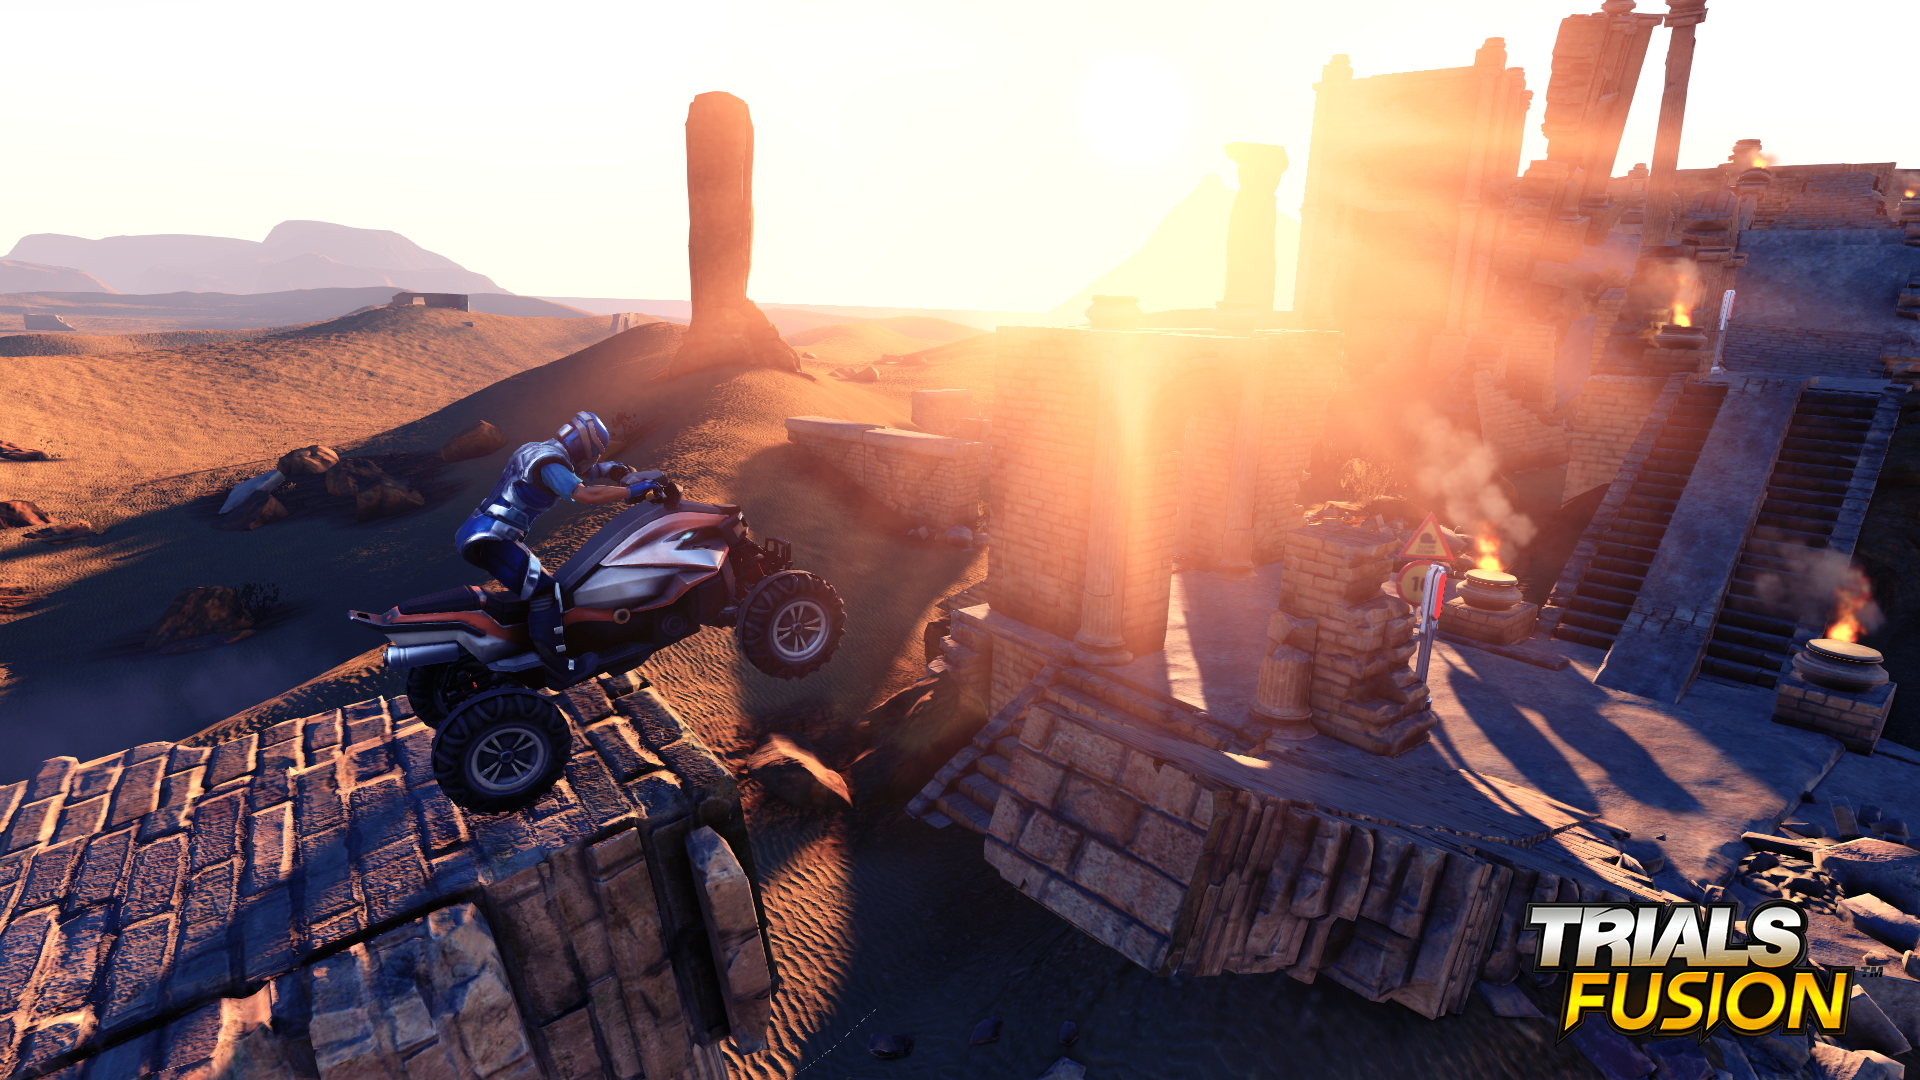 Trials Fusion runs at 1080p on PS4, 900p on Xbox One